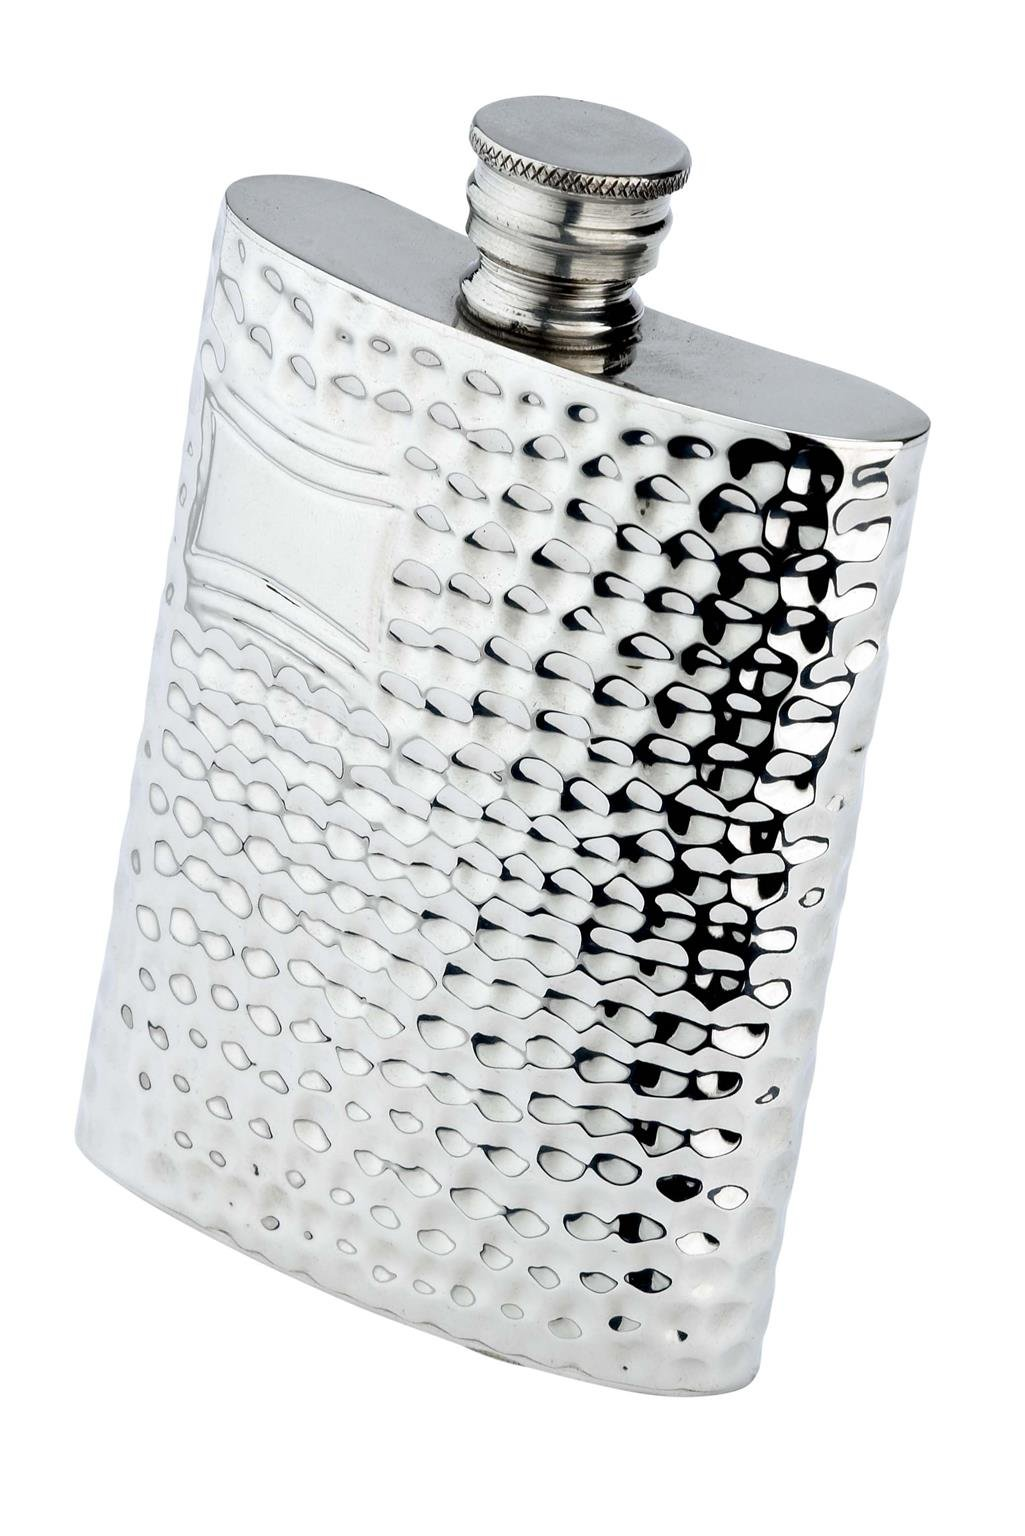 Budd Leather Hammered Pewter Flask, 8-Ounce, Silver